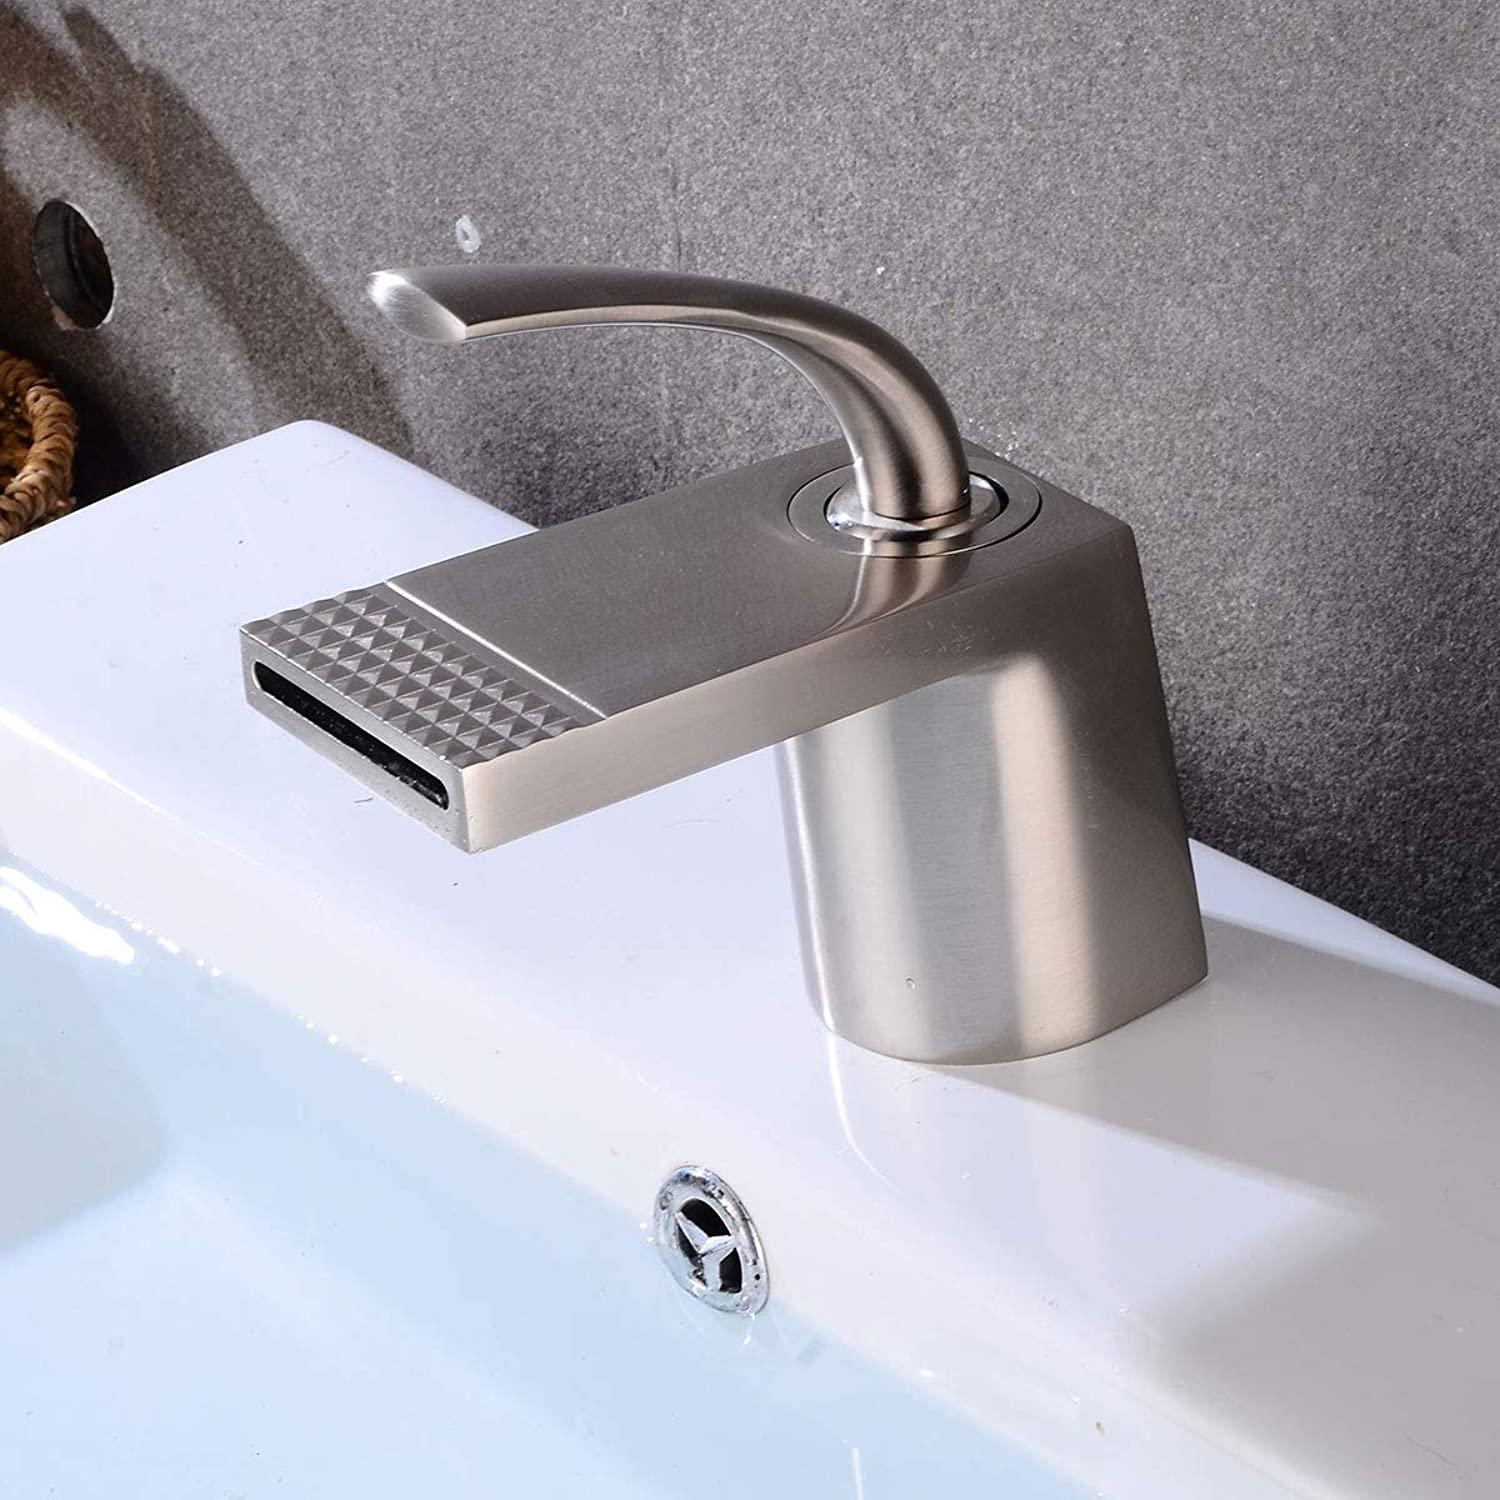 Bathroom Low Spout Waterfall Basin Sink Mixer Tap, Modern Single Lever Tall Bath Brass Faucet, Lavatory Single Handle Flat Mouth Traditional Hot Cold Monobloc Countertop Tap